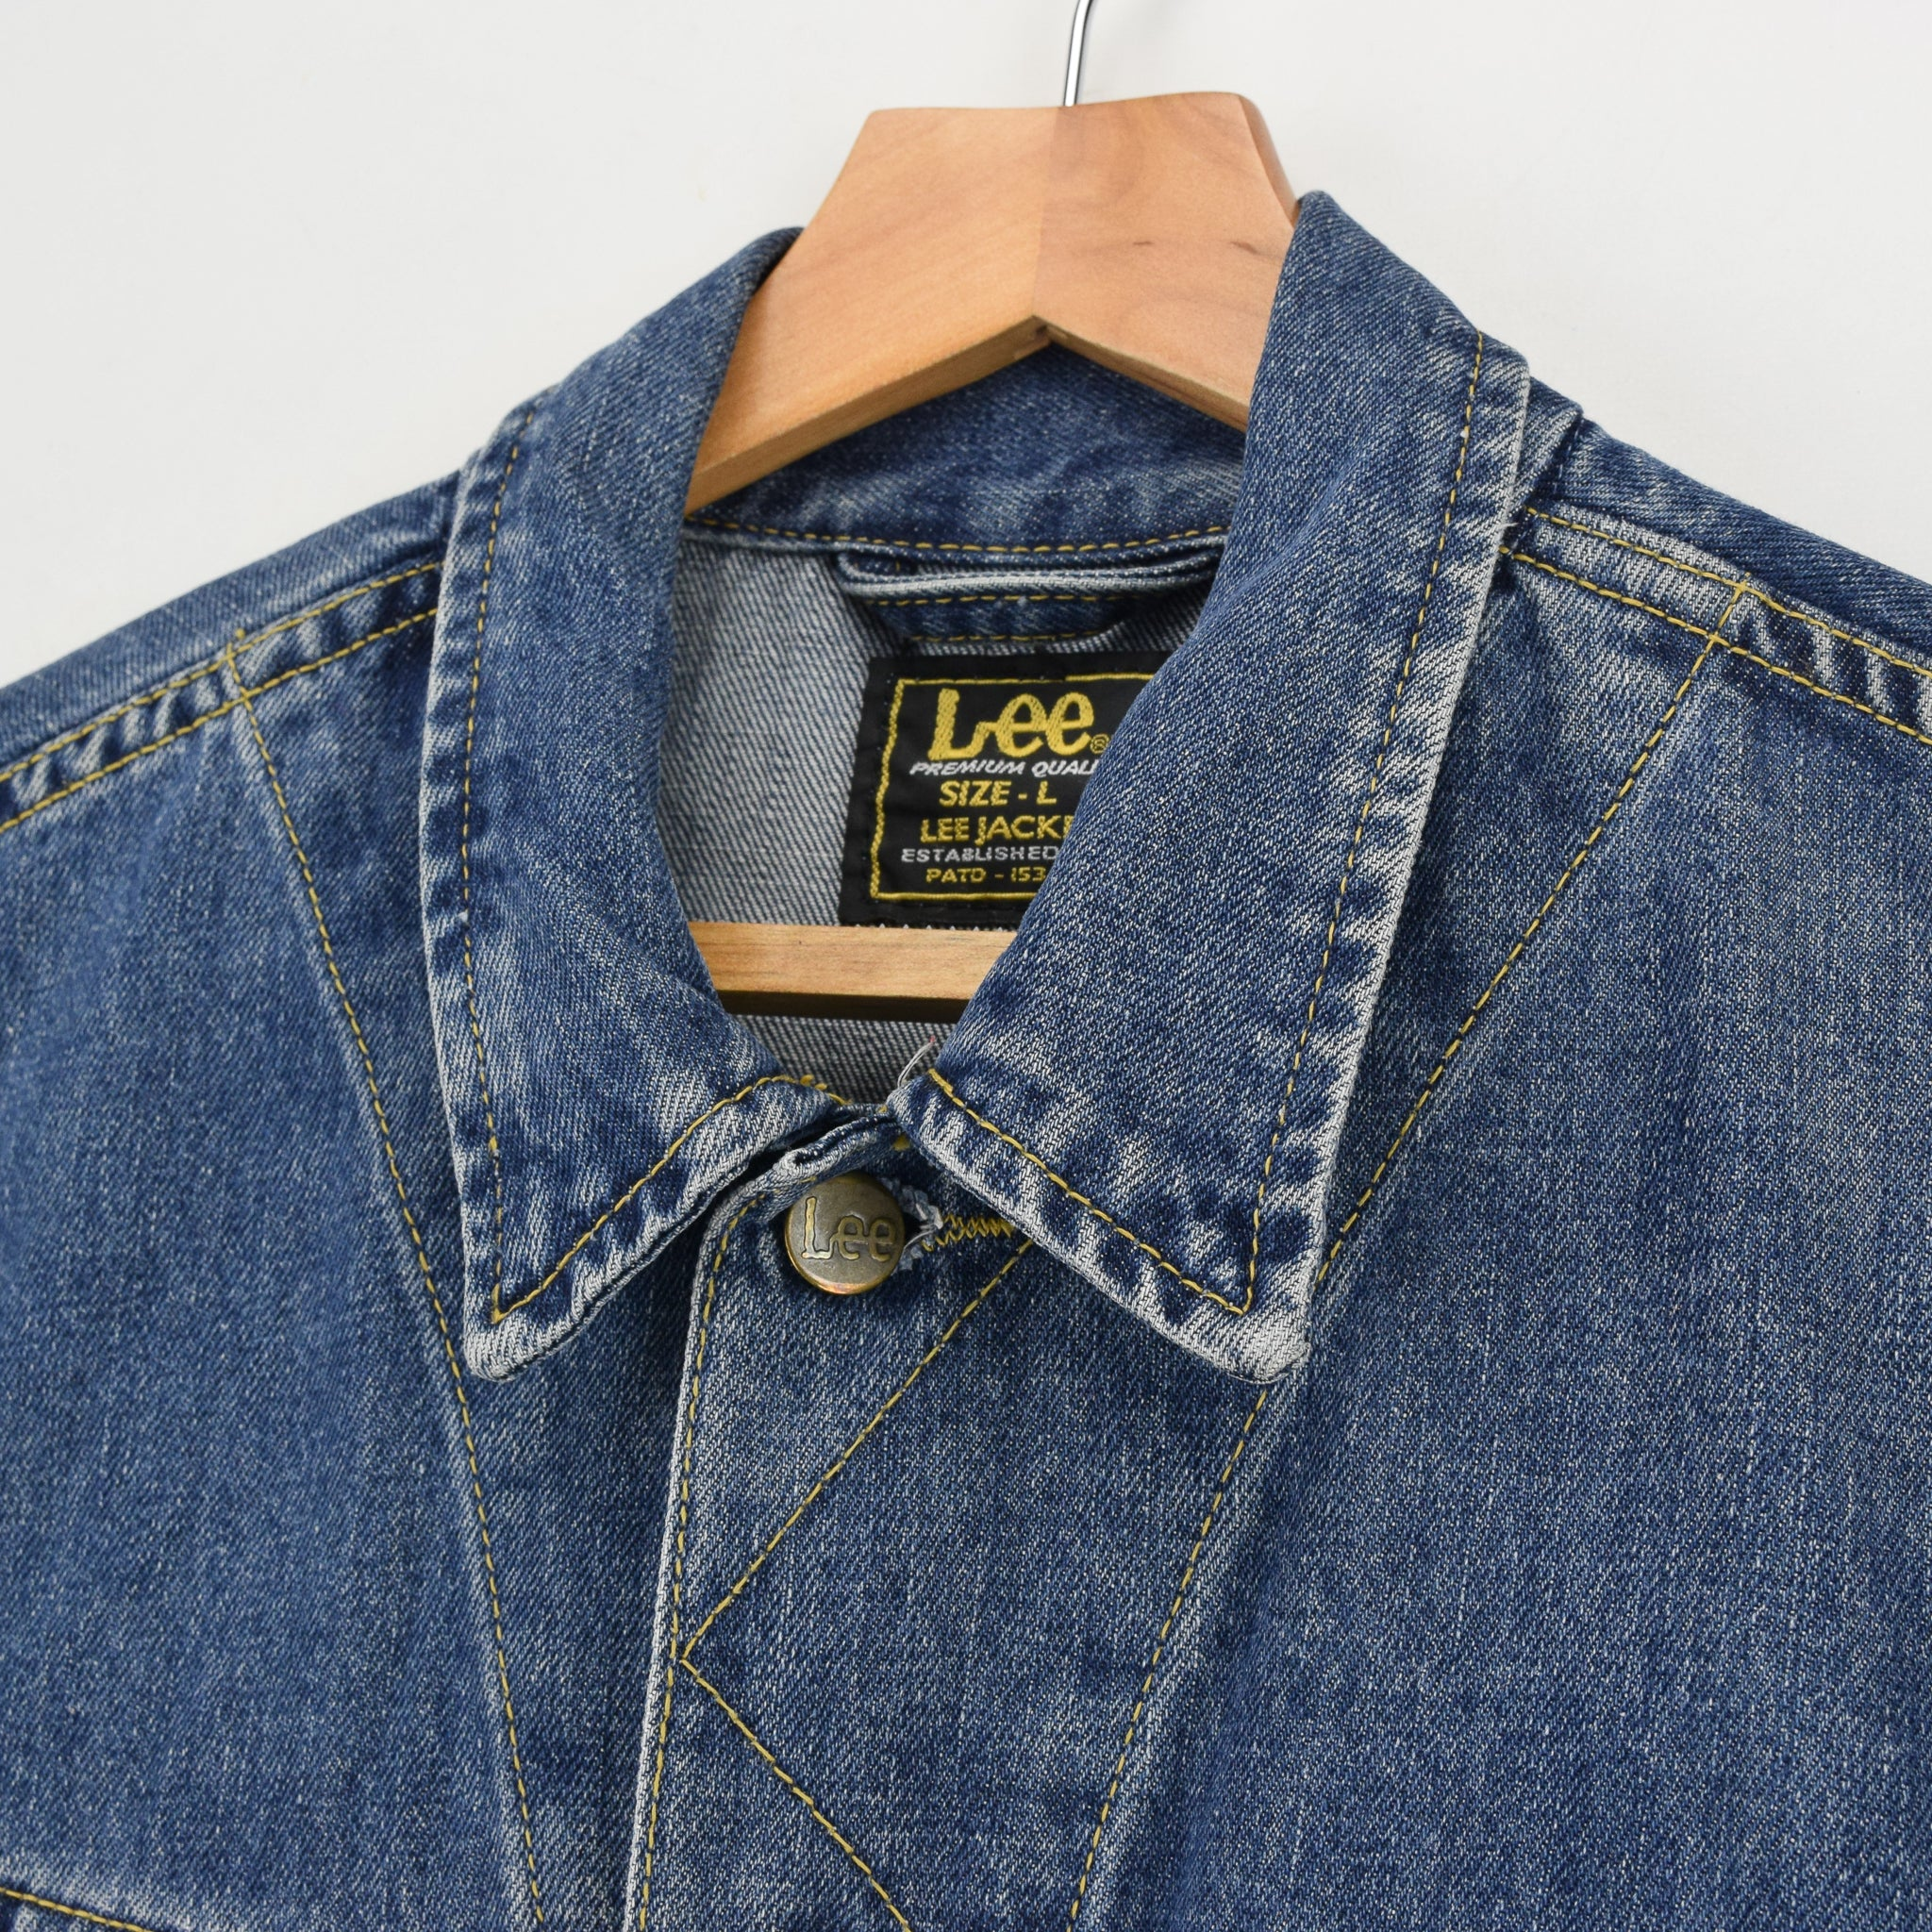 Vintage Lee Washed Blue Denim Trucker Style Basic Jacket L collar